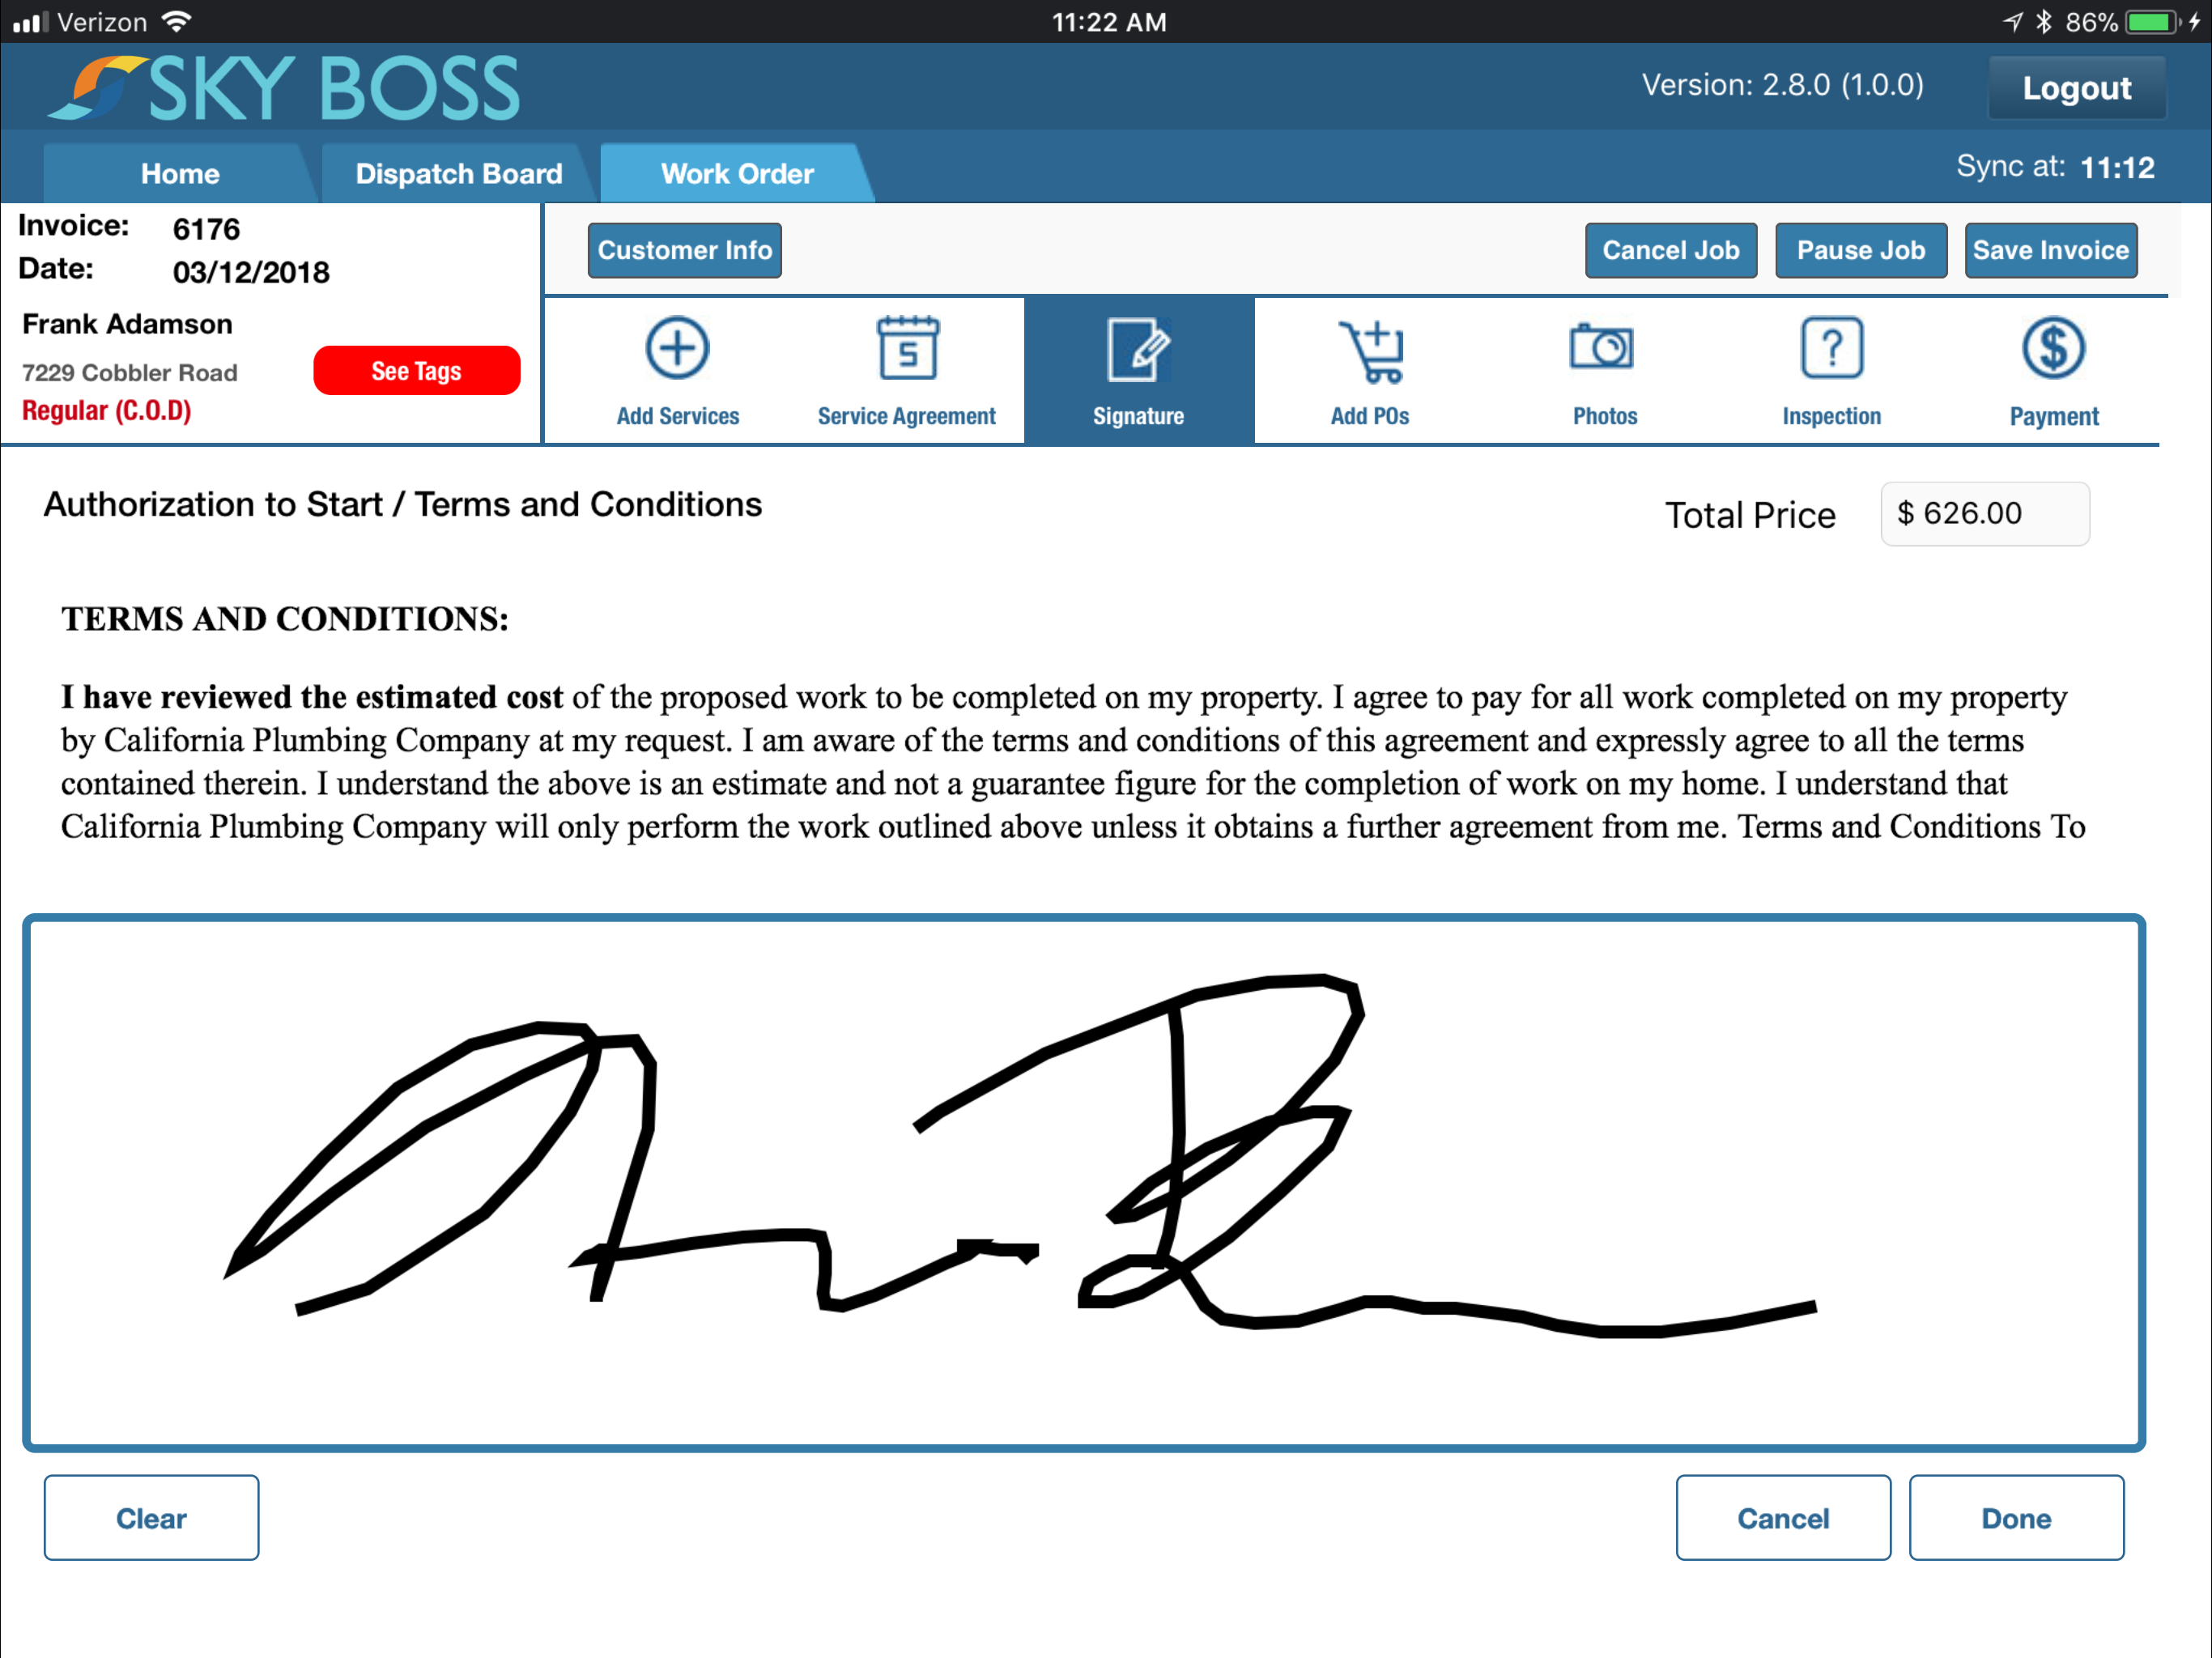 Billing and invoicing capabilities include the ability to capture customer signatures digitally, and log all transaction records